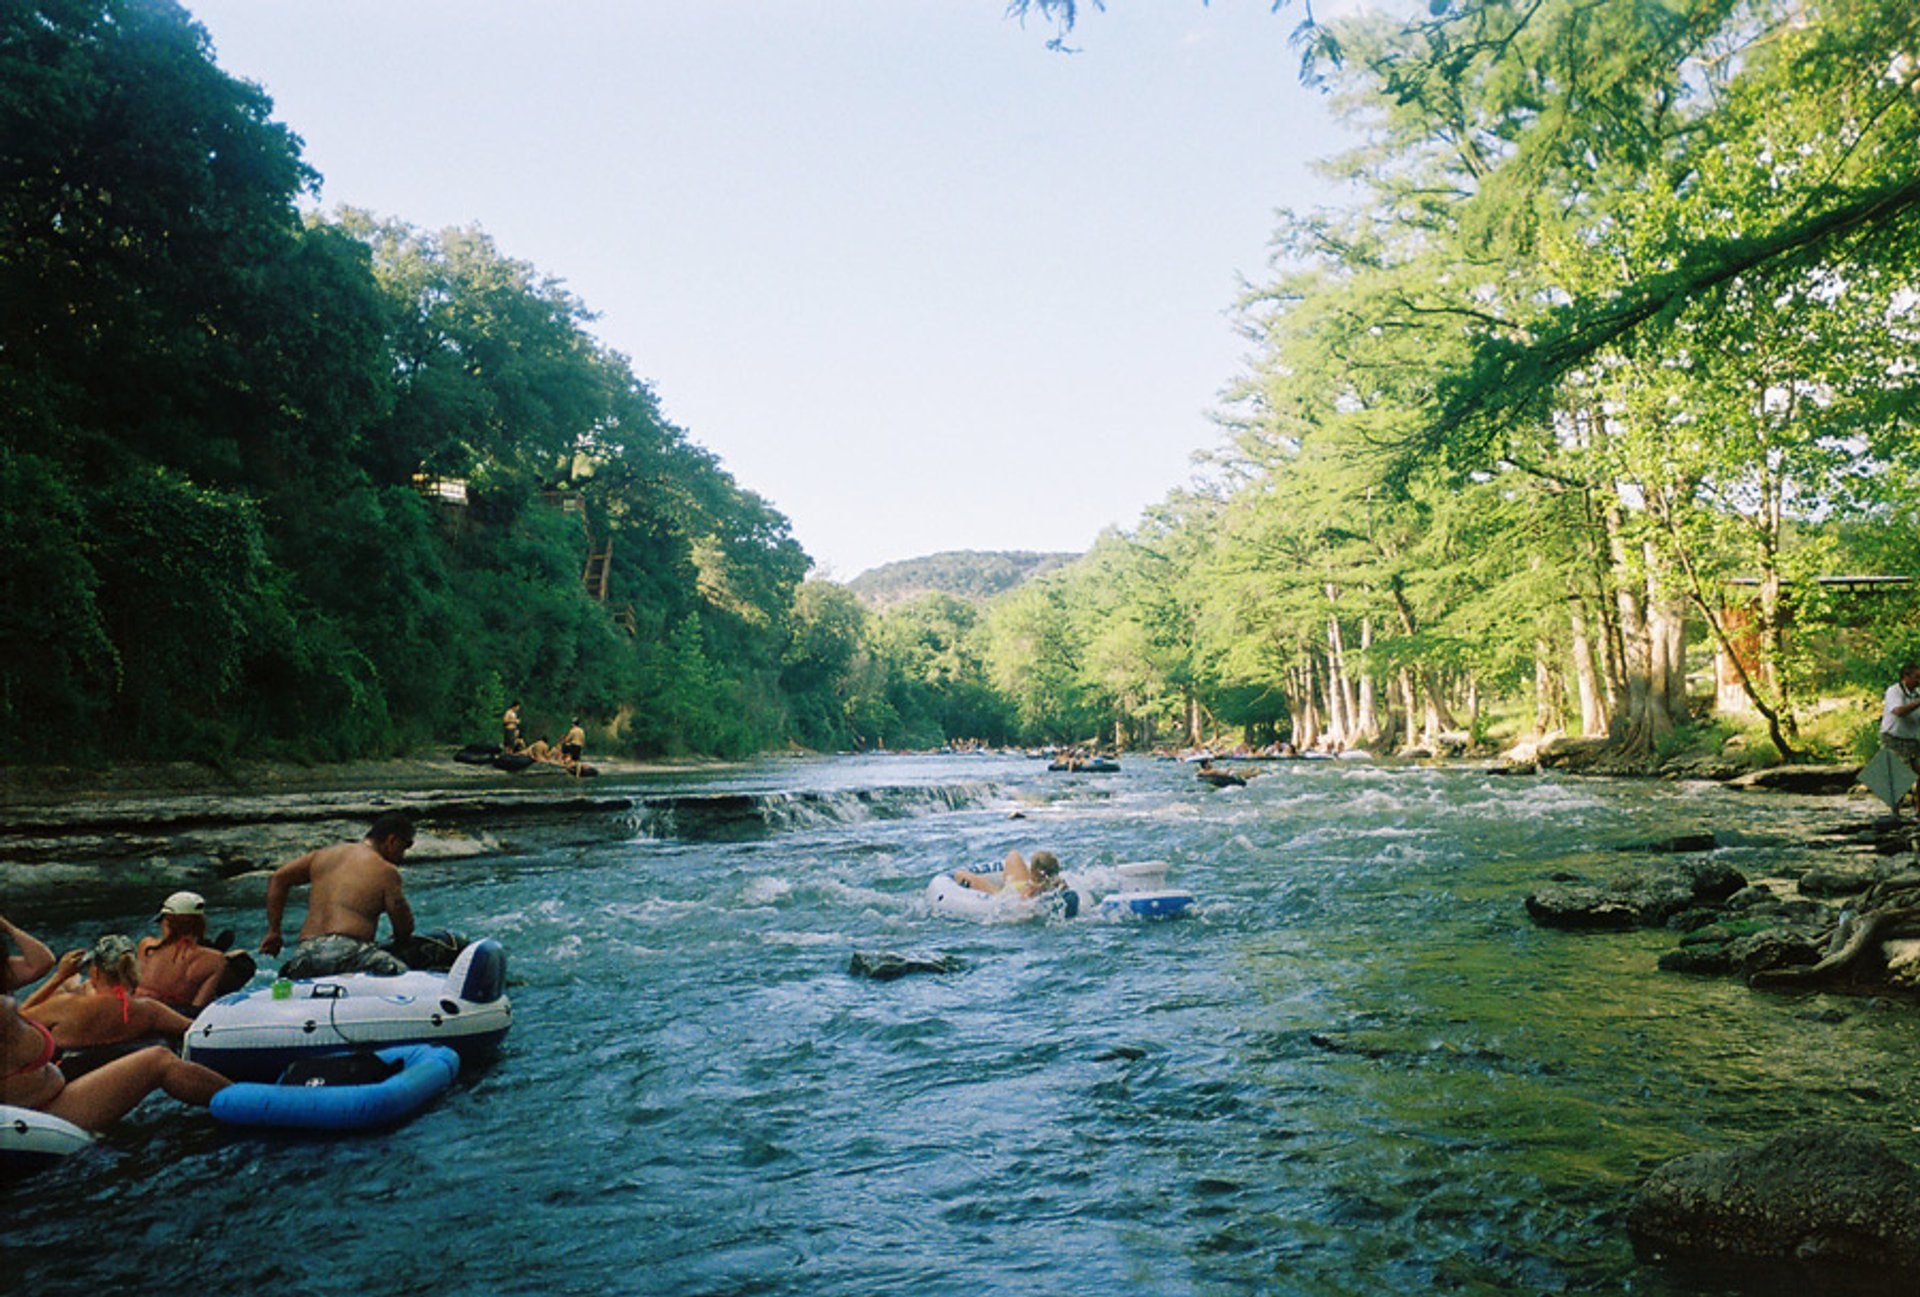 River Tubing in Texas - Best Season 2020